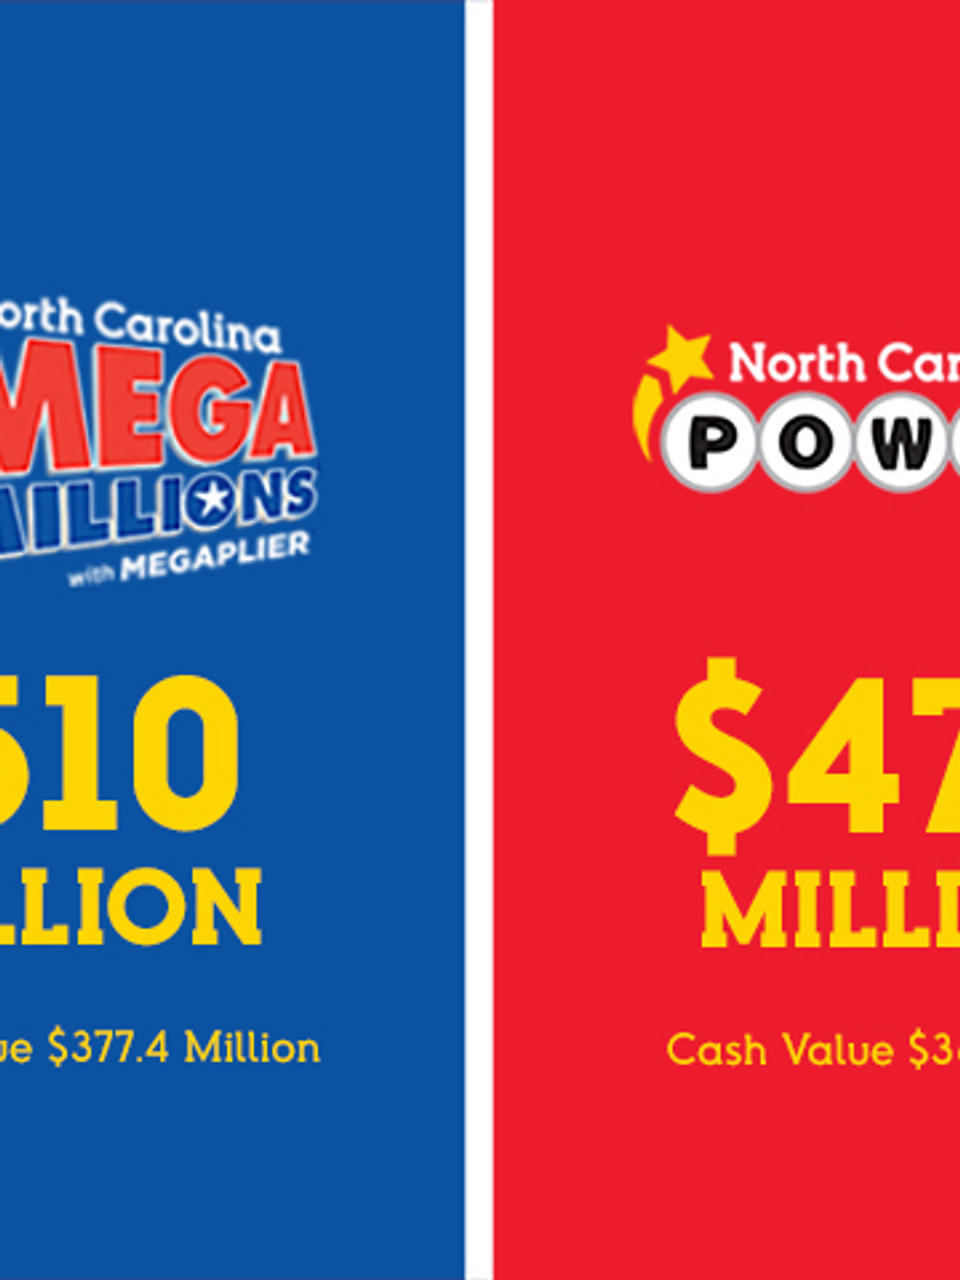 Mega Millions Powerball Jackpots Total Nearly 1 Billion For Weekend Drawings Wlos